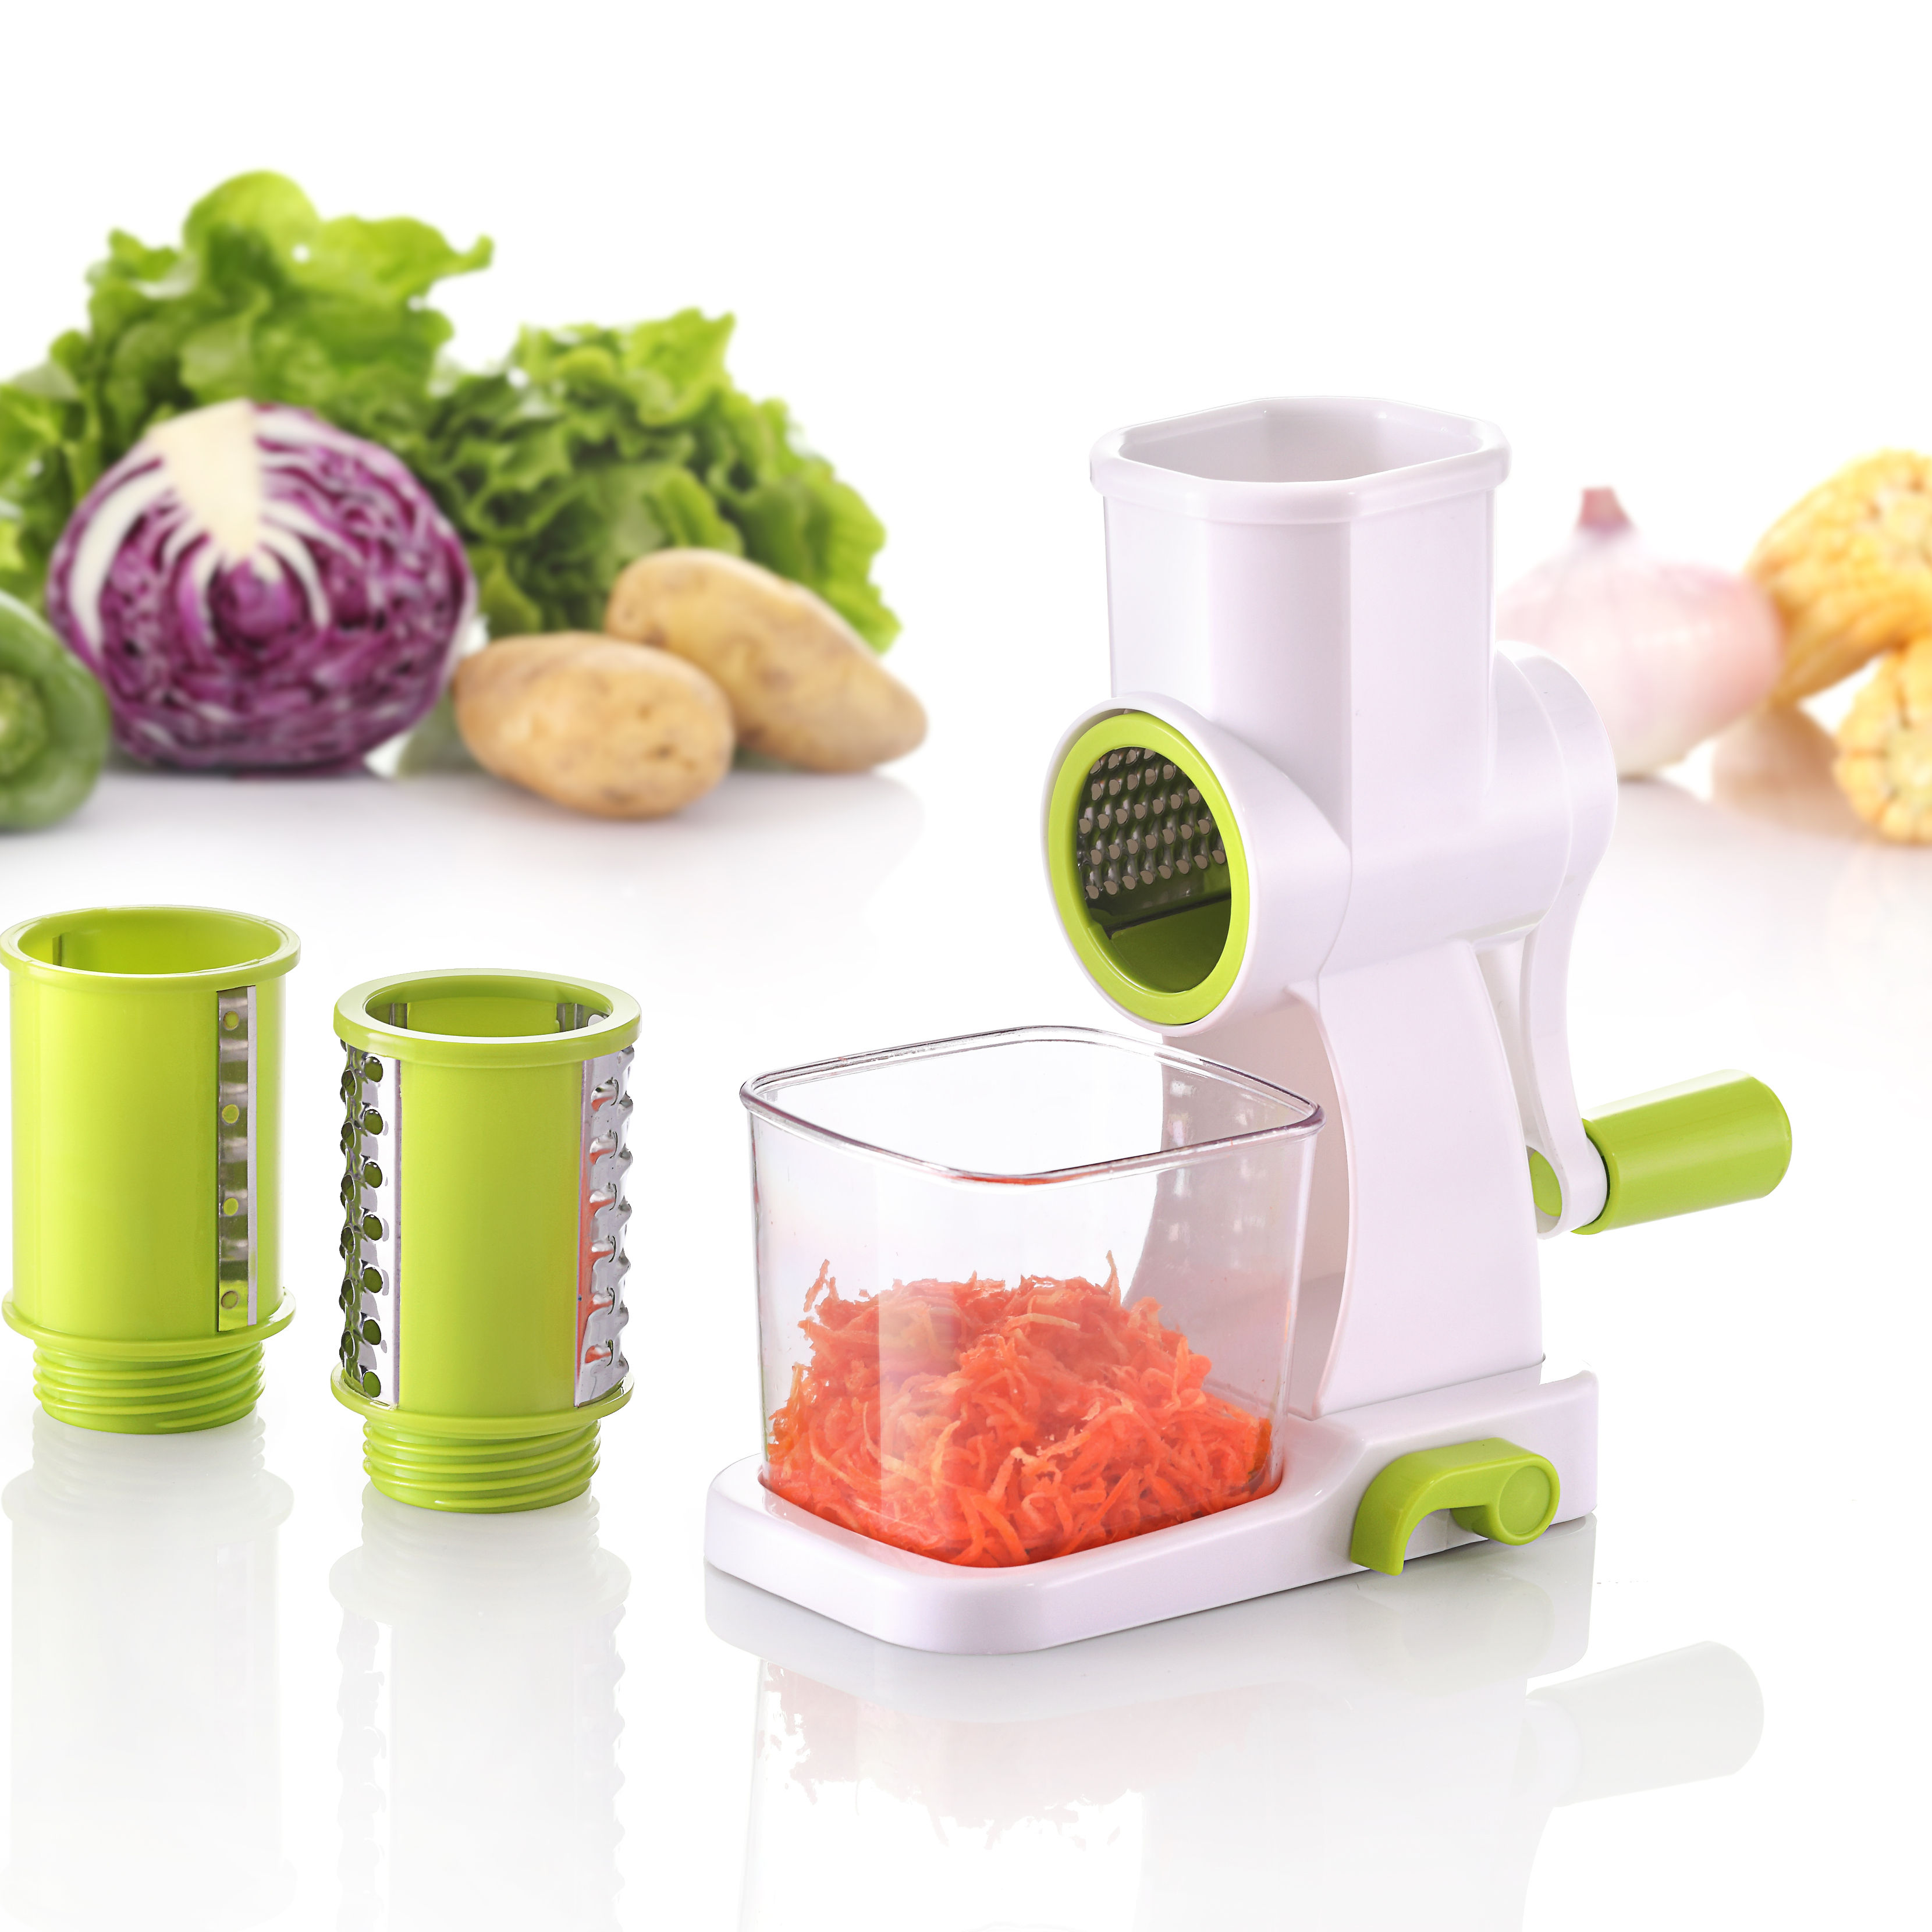 Multifunctional Manual hand food Vegetable cutter and Grater for kitchen accessories